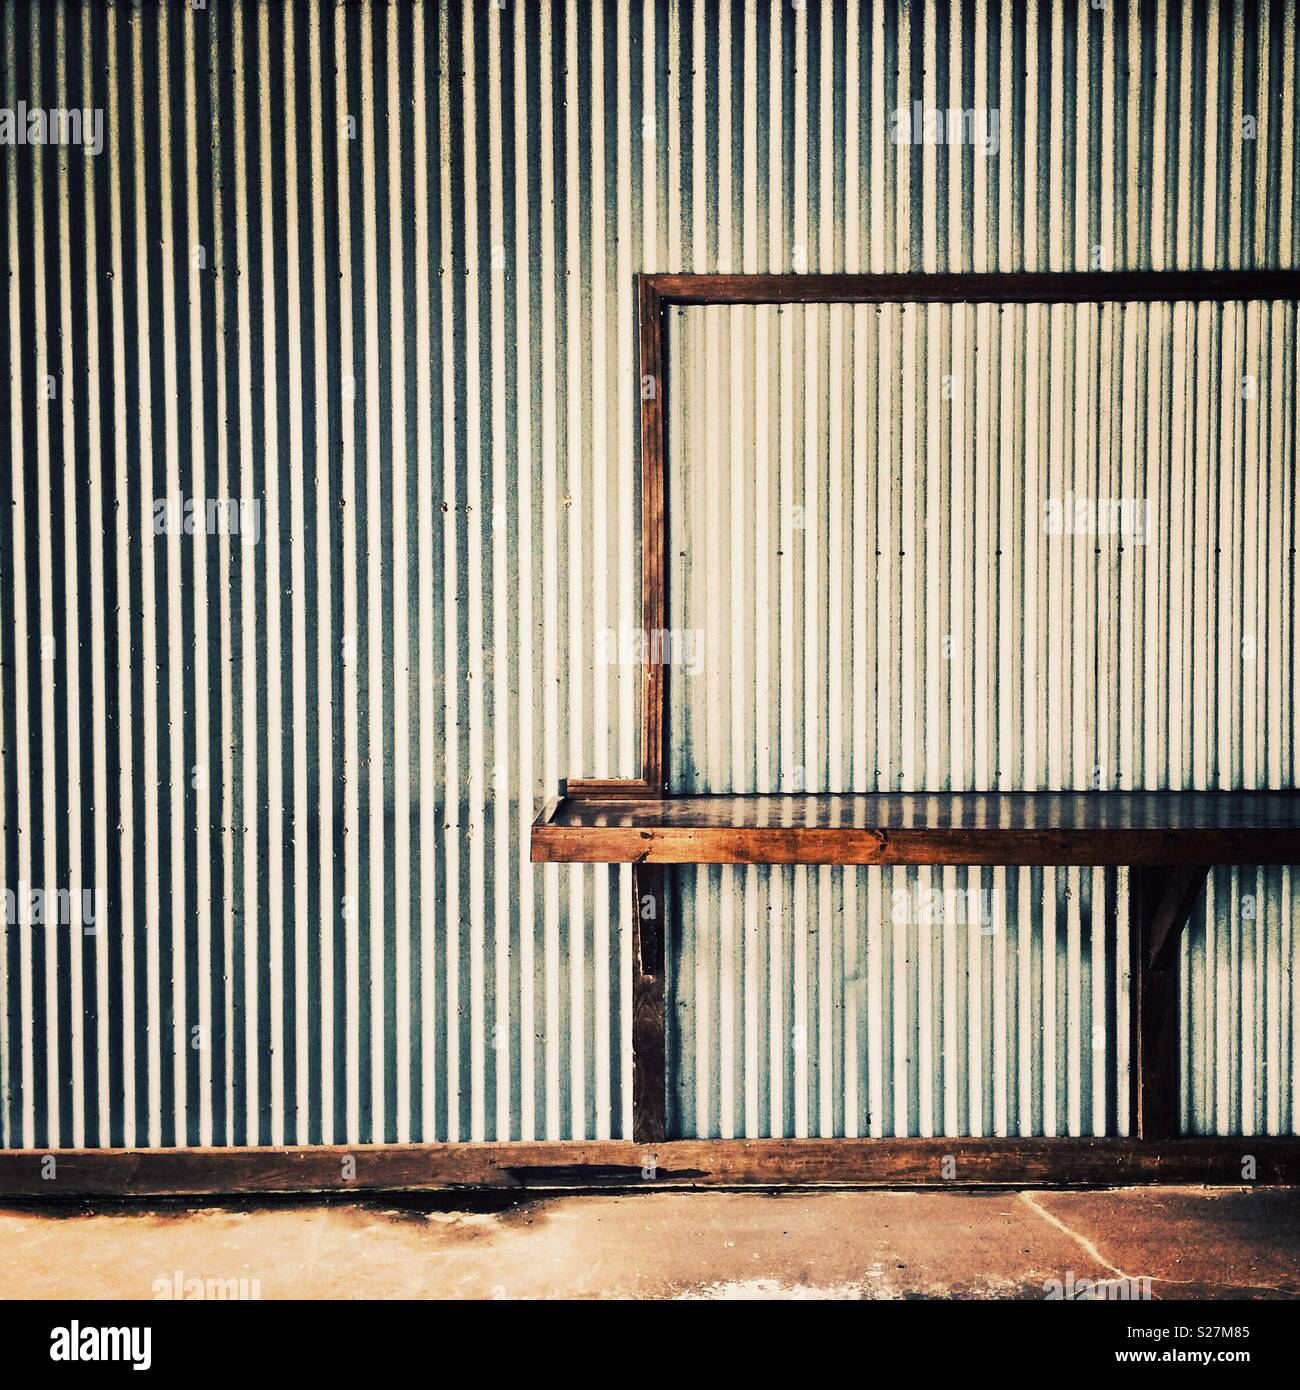 The corrugated steel wall of a closed snack bar in Mississippi - Stock Image